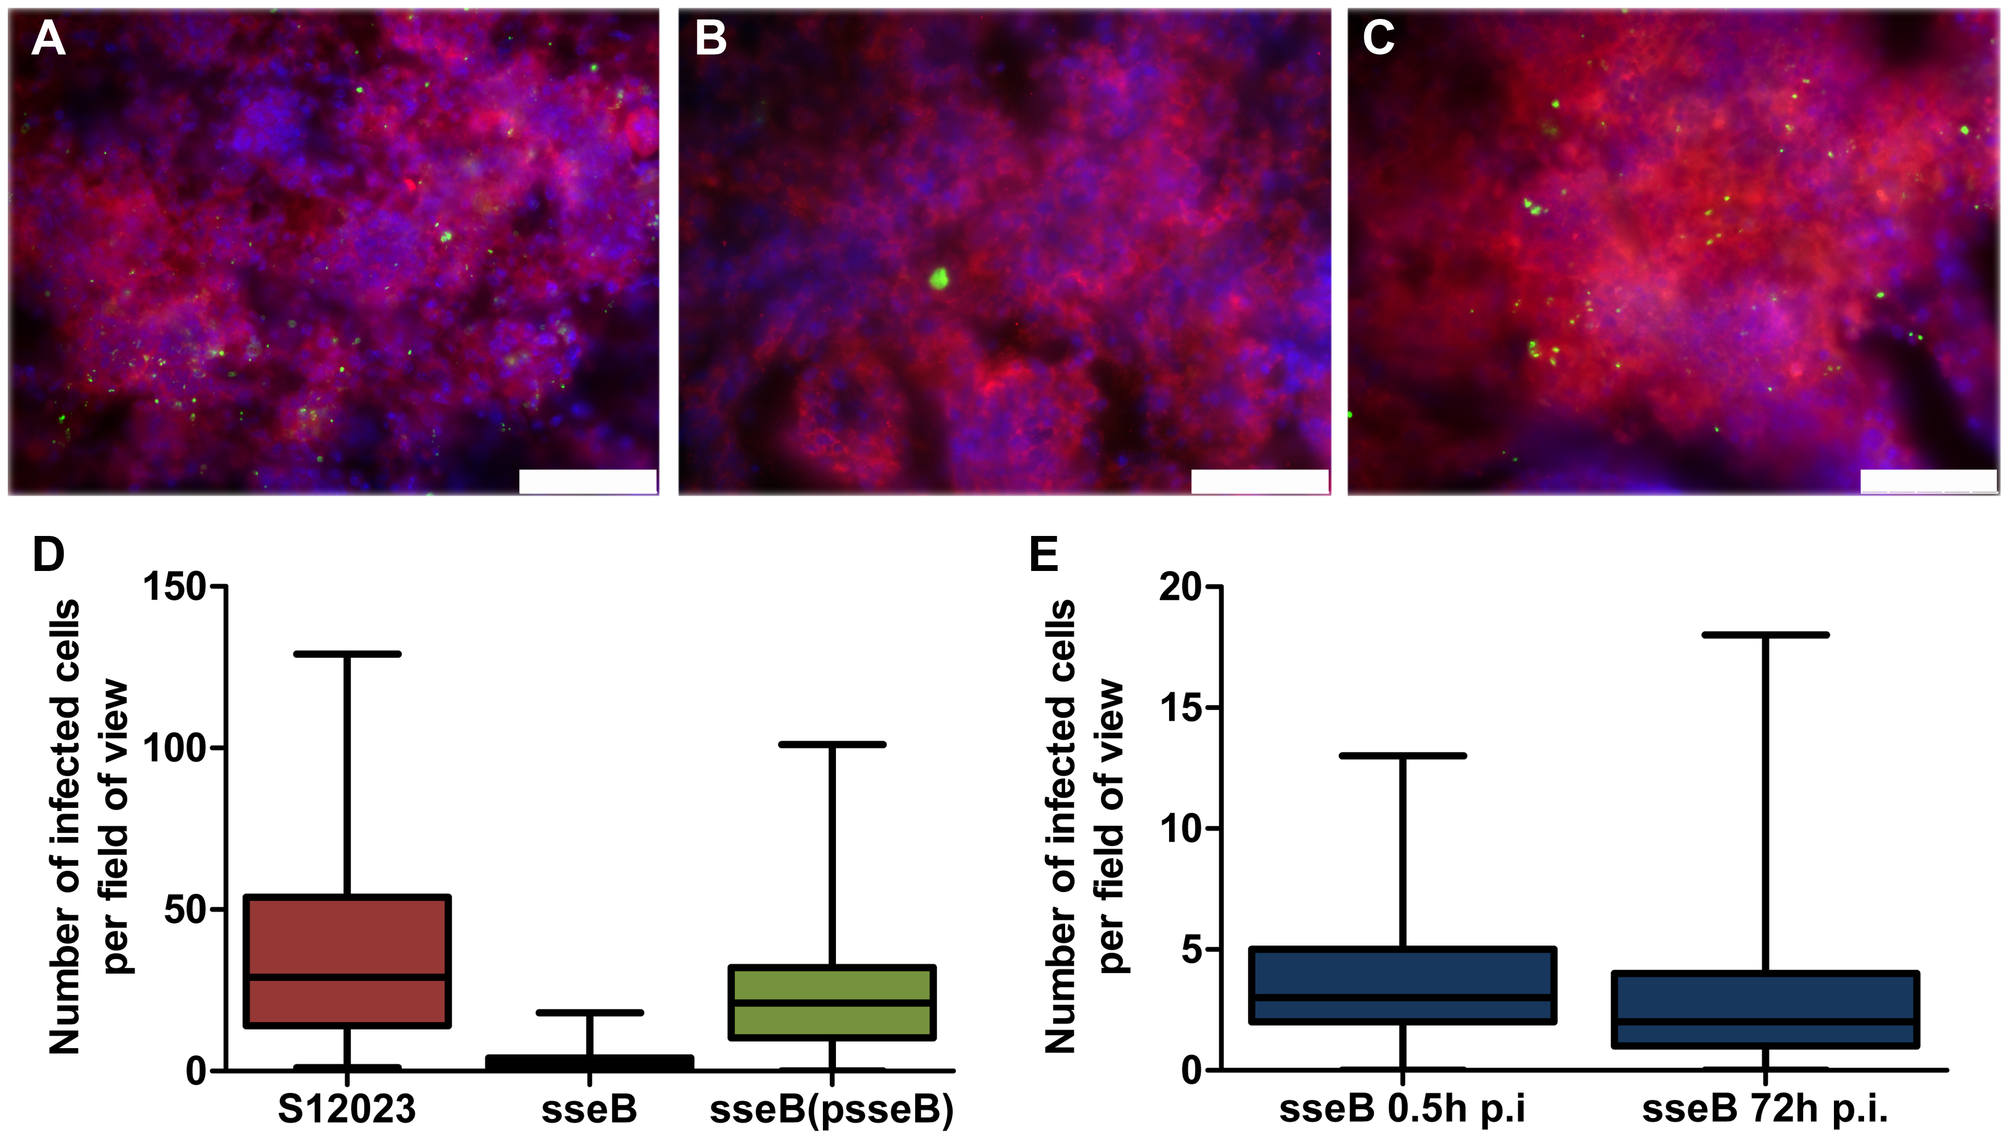 SPI-2 T3SS mutants are present in far fewer infected foci per organ than the wild-type.